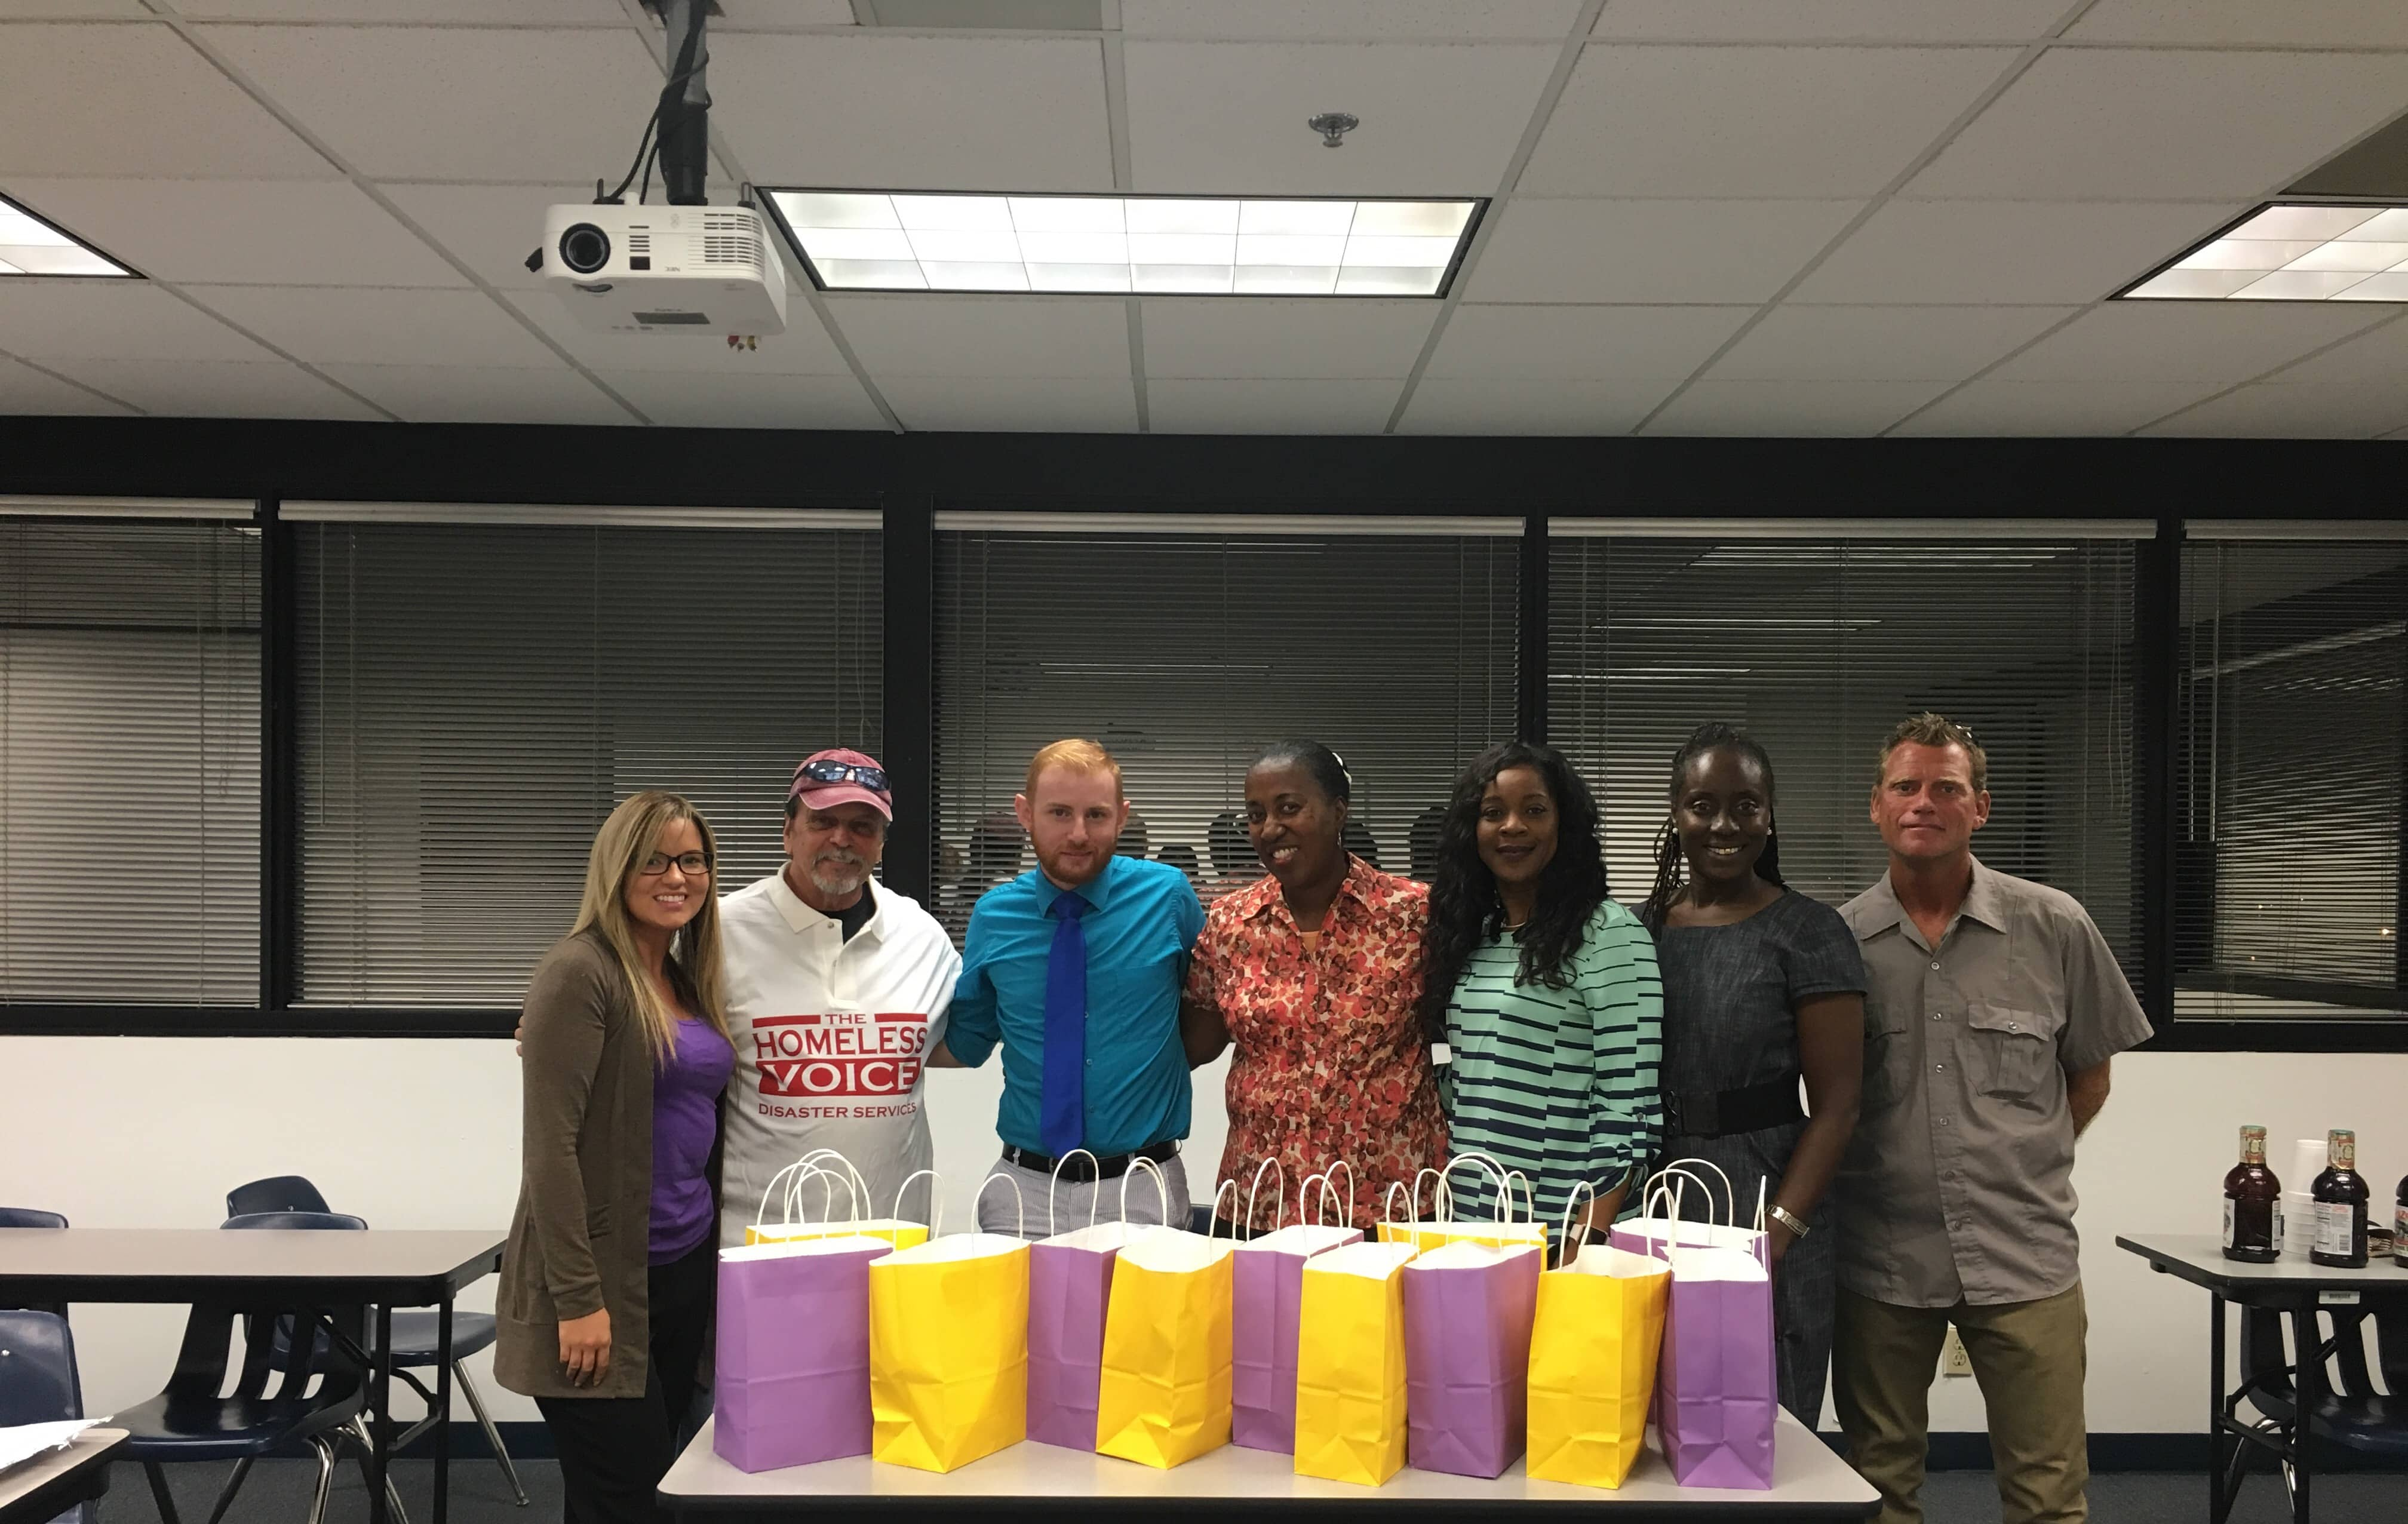 Psychology Students from the Ft. Lauderdale Campus Partner with Homeless Voices